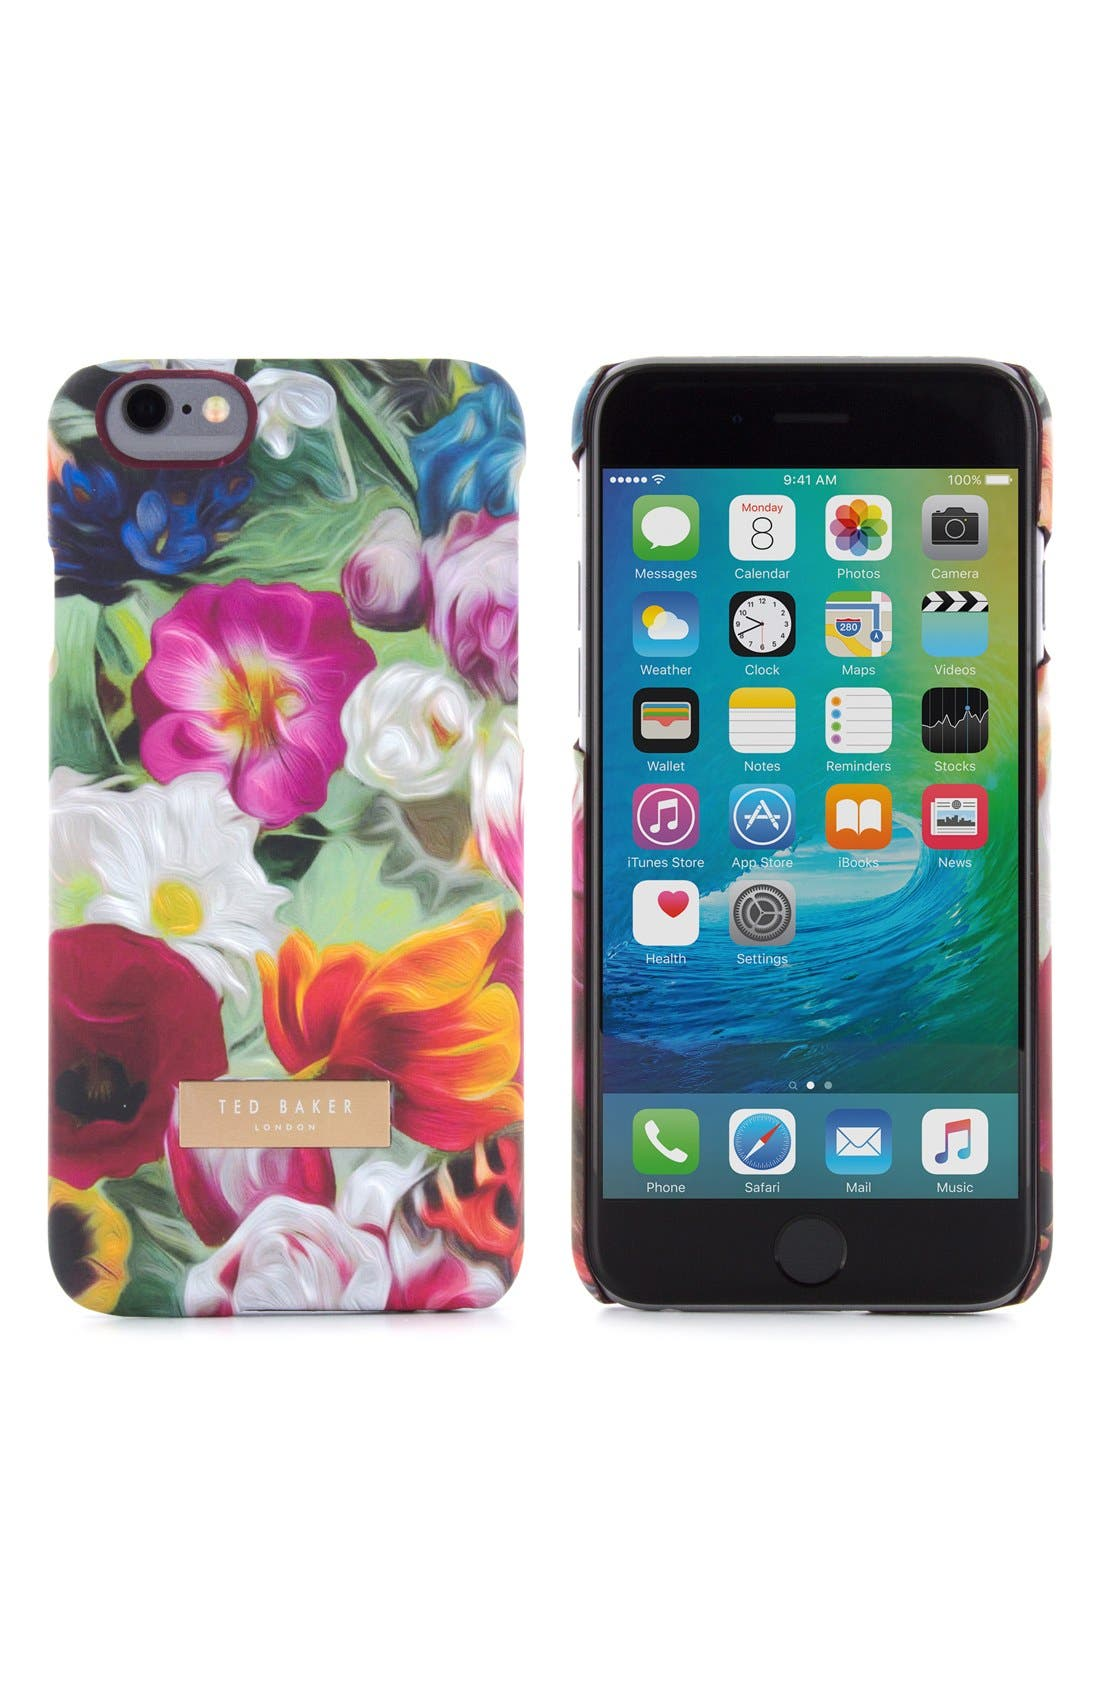 Main Image - Ted Baker London iPhone Floral Swirl 6/6s Case